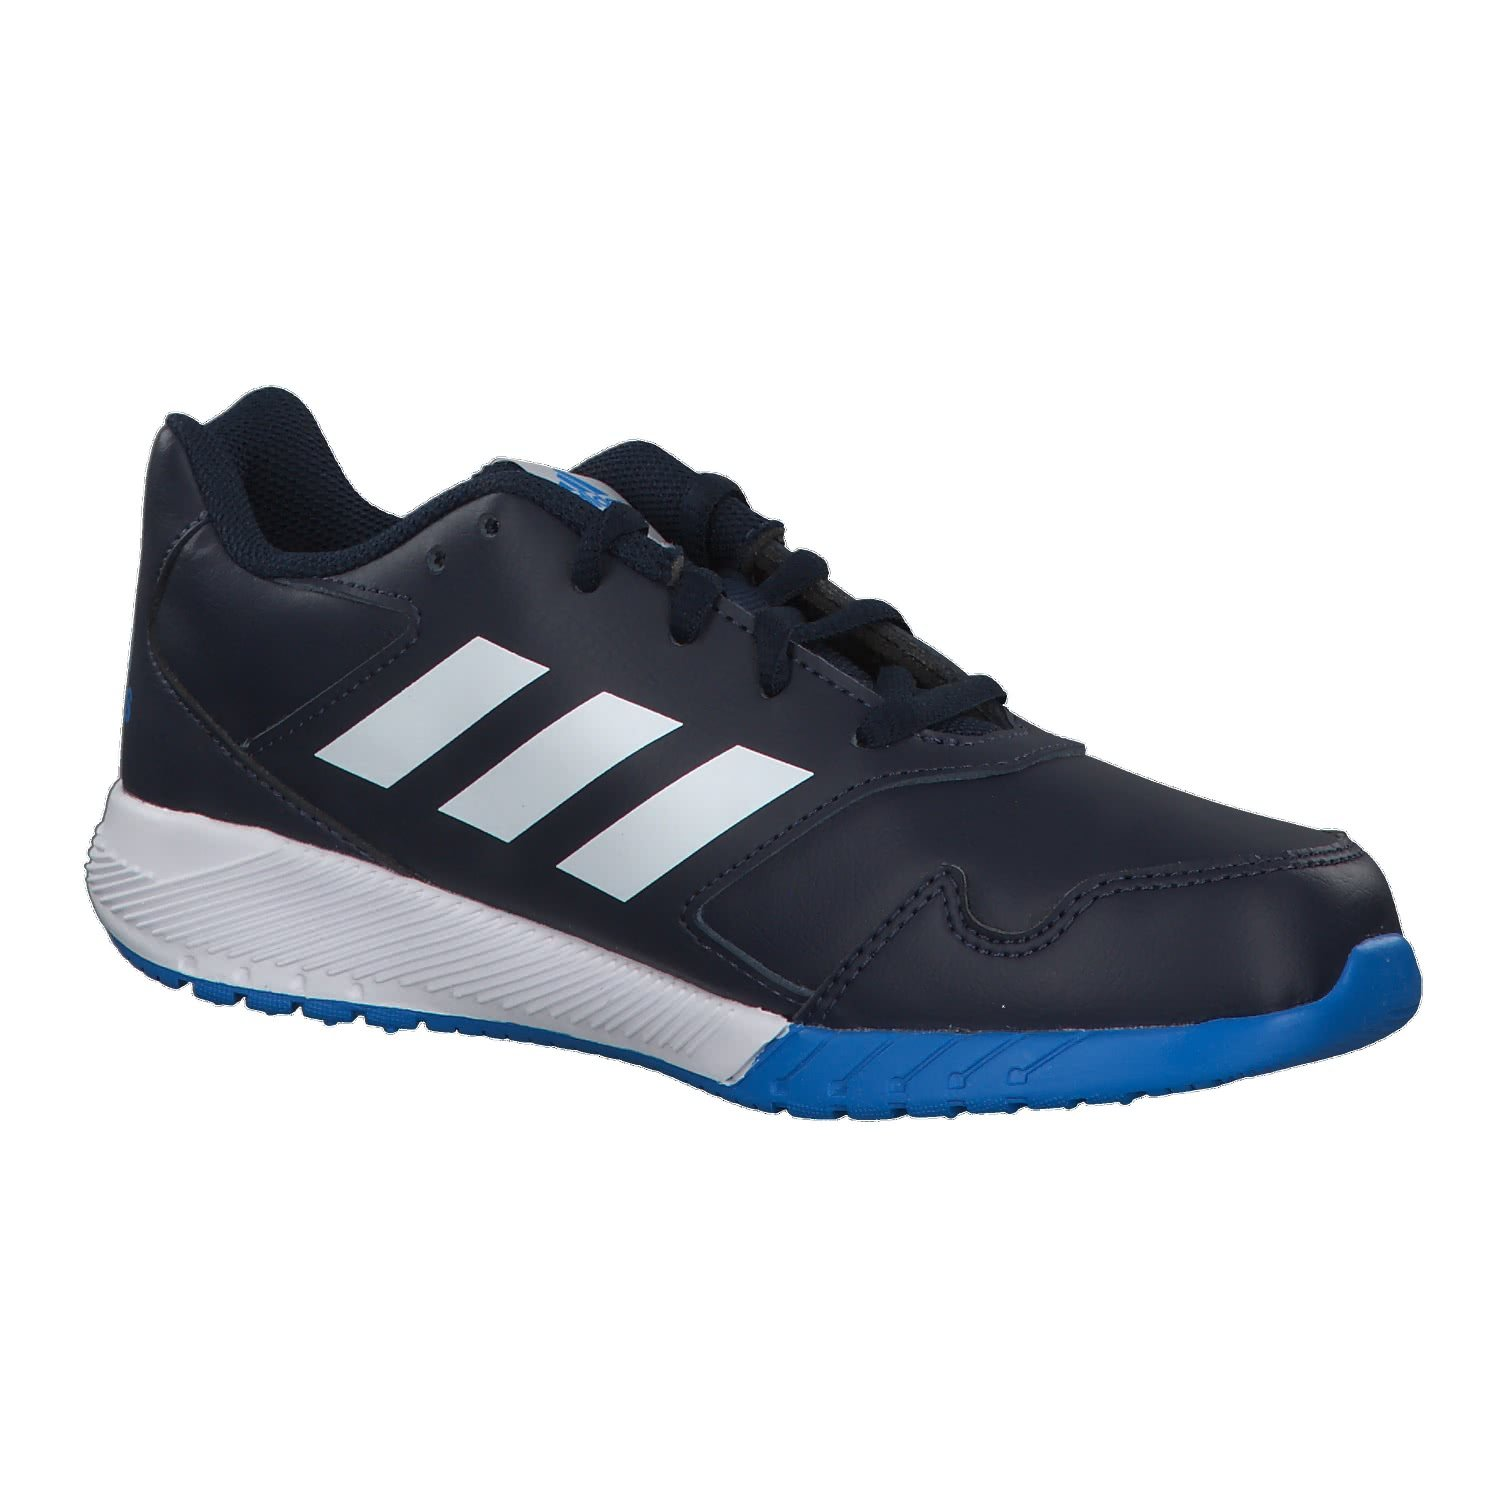 finest selection b1279 a583f adidas Unisex Kids Altarun K Fitness Shoes